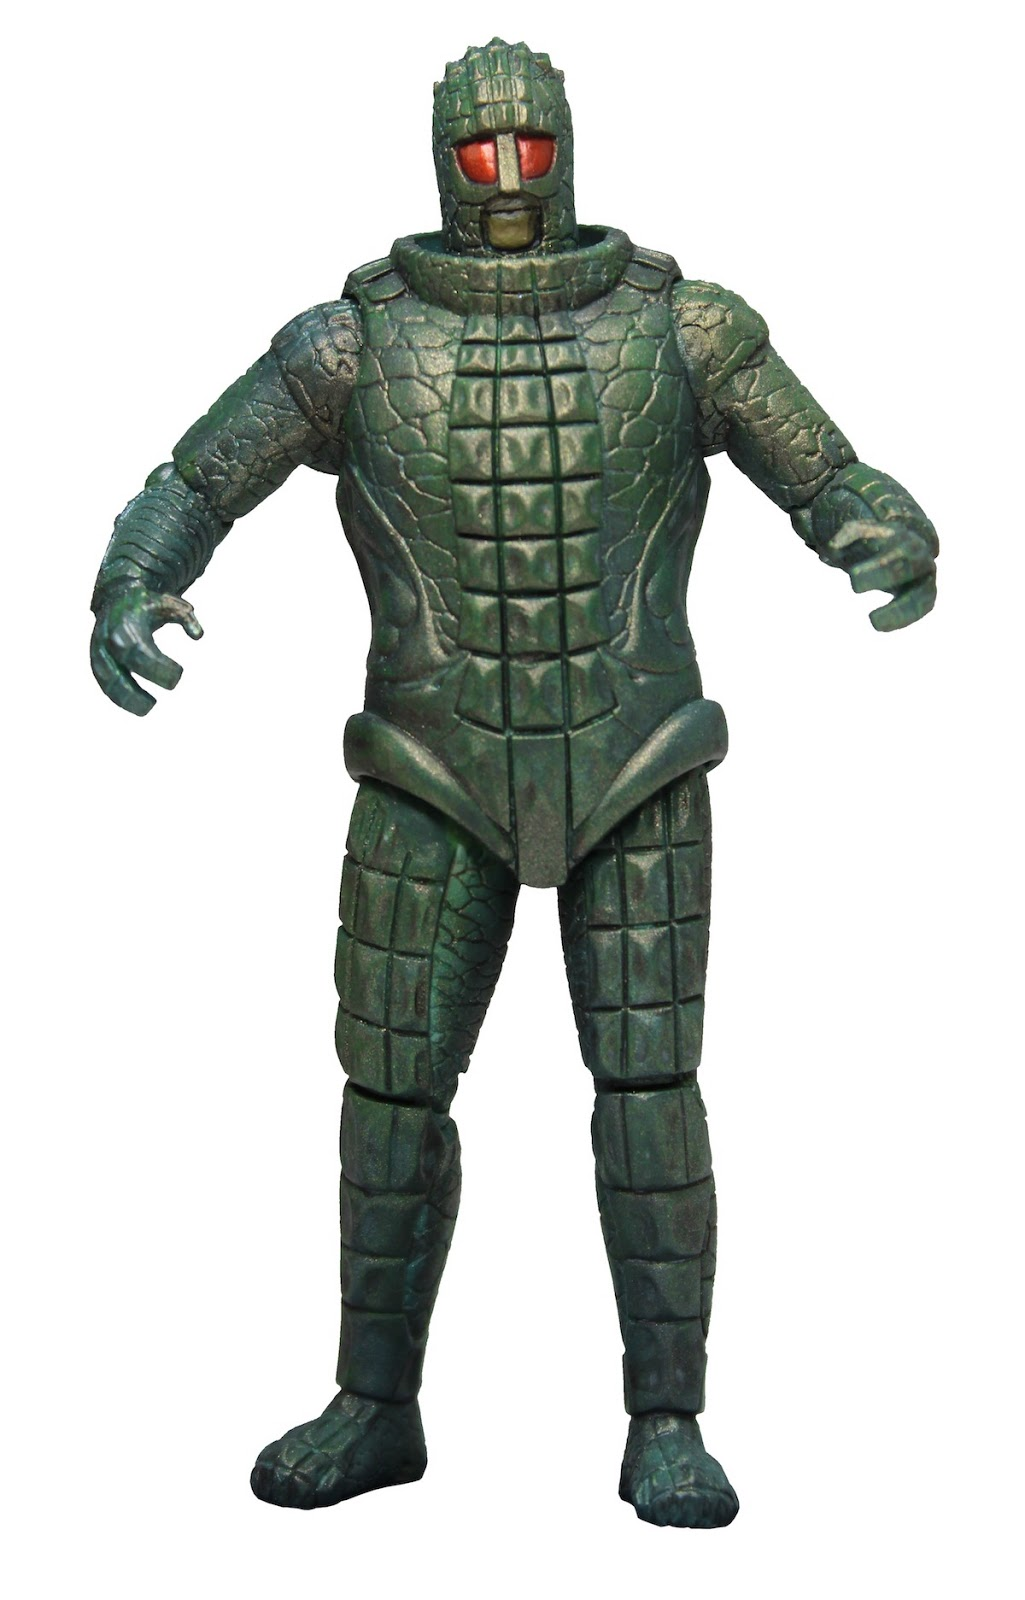 tictoctoy doctor whos ice warrior takes action